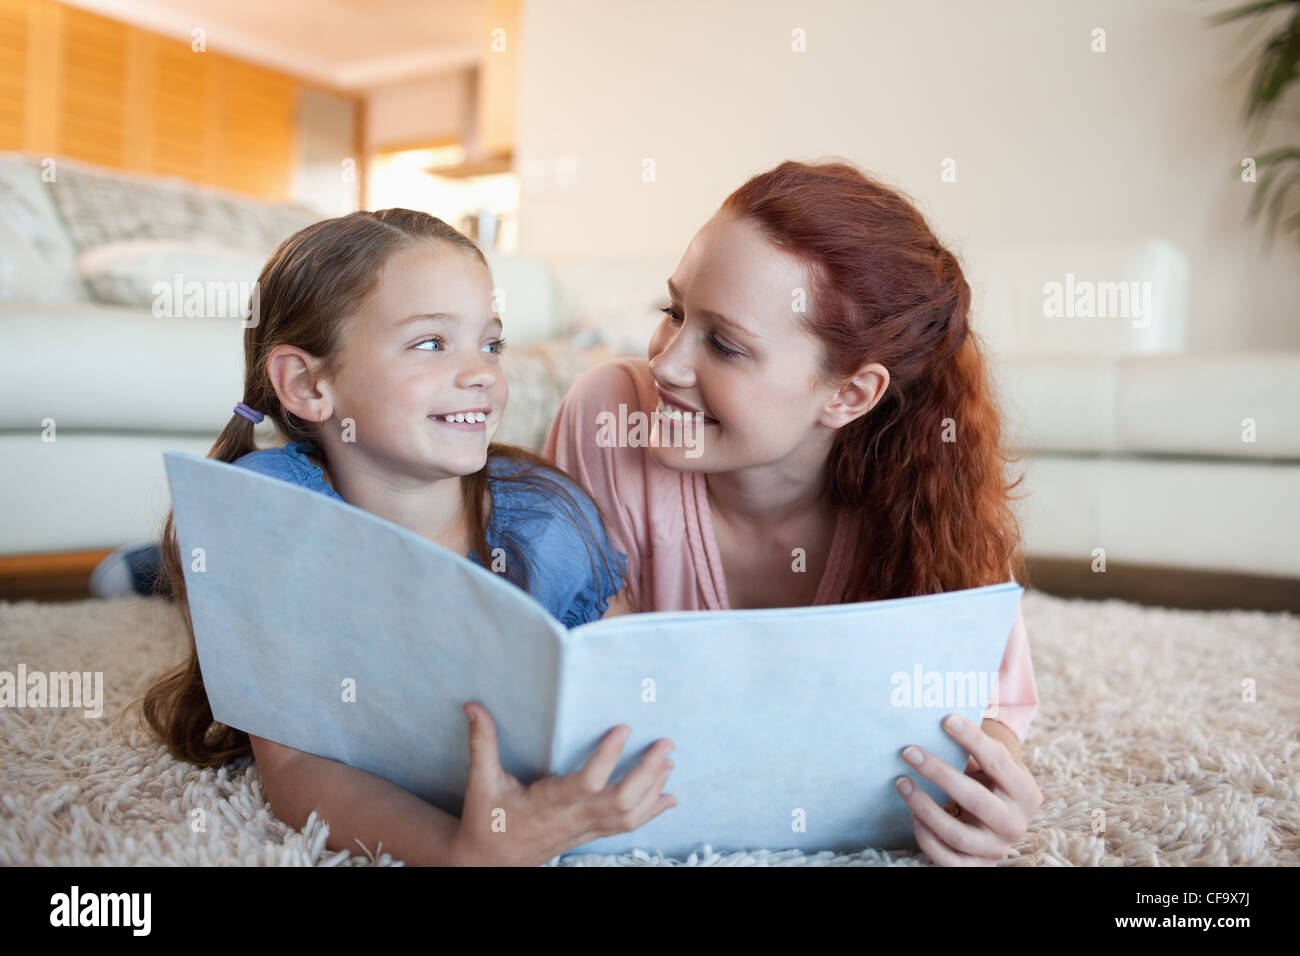 Mother and daughter with periodical on the floor - Stock Image